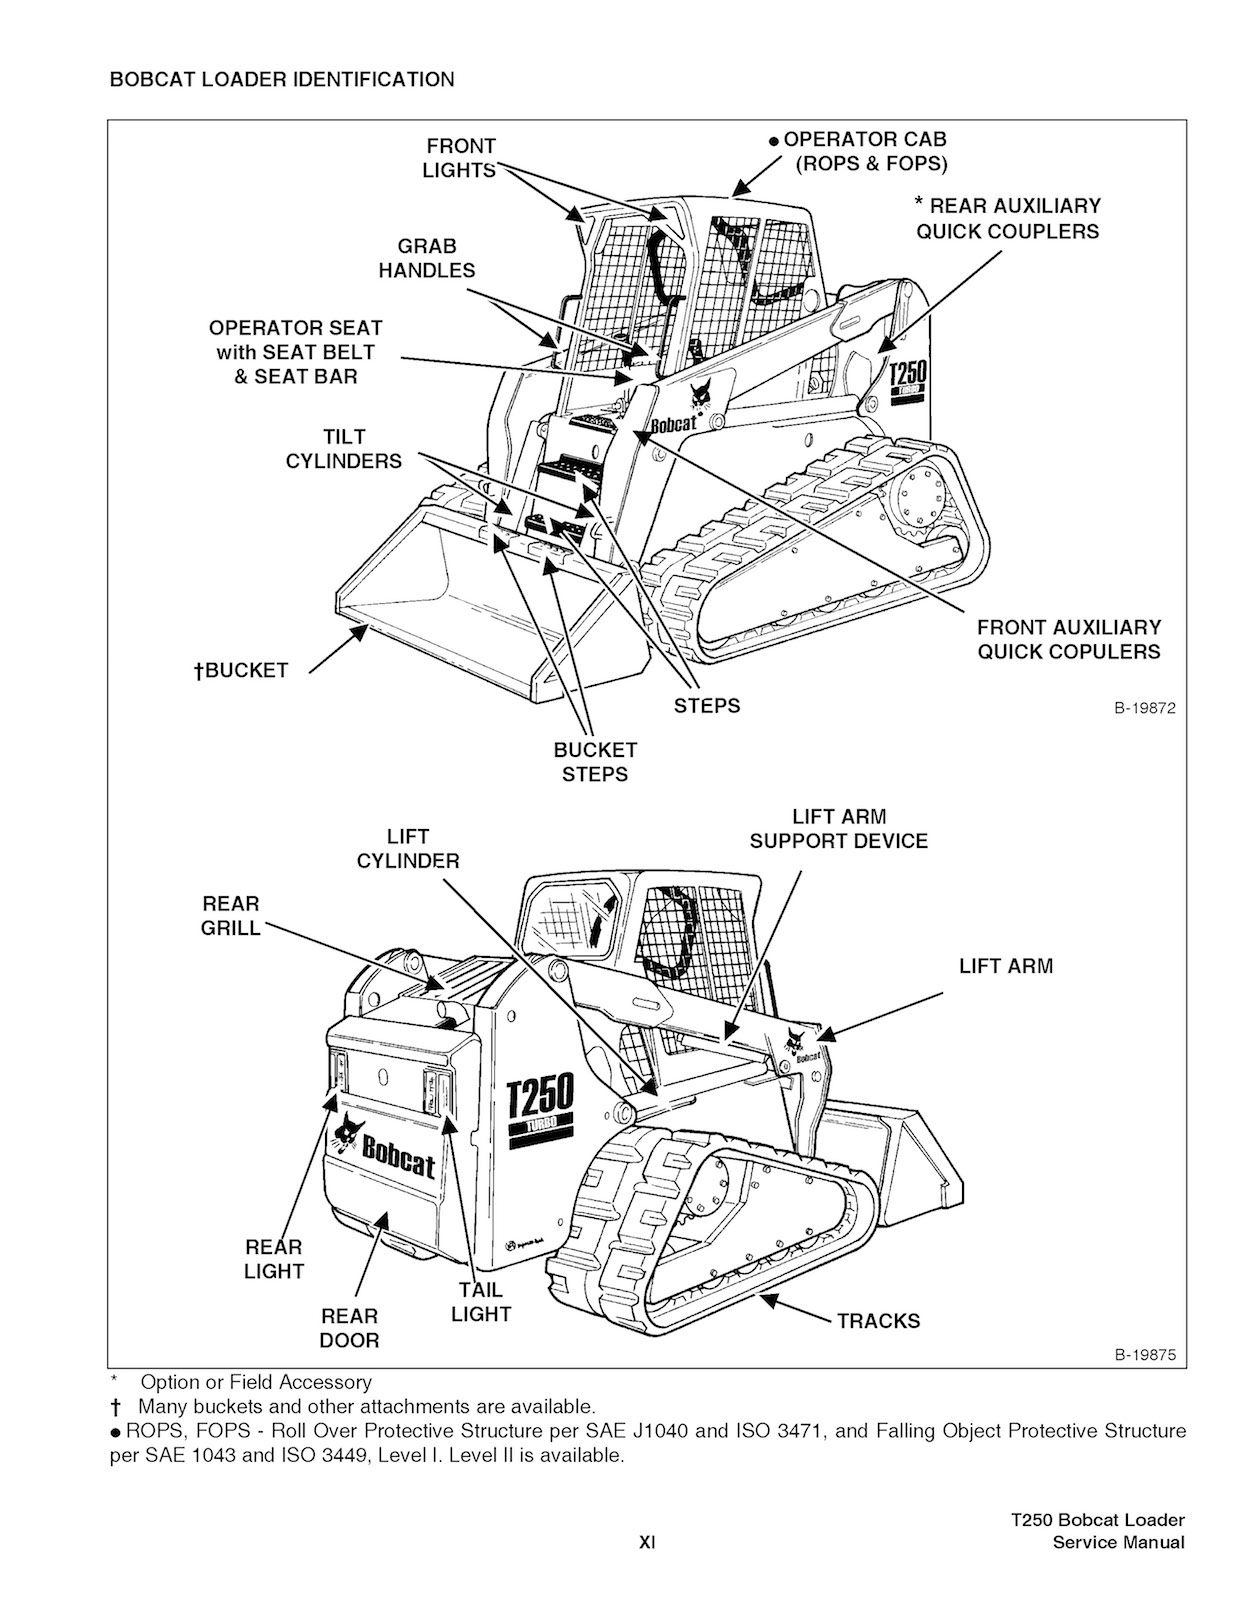 small resolution of bobcat t250 parts diagram wiring diagram used bobcat t 250 parts catalog bobcat t250 parts diagram